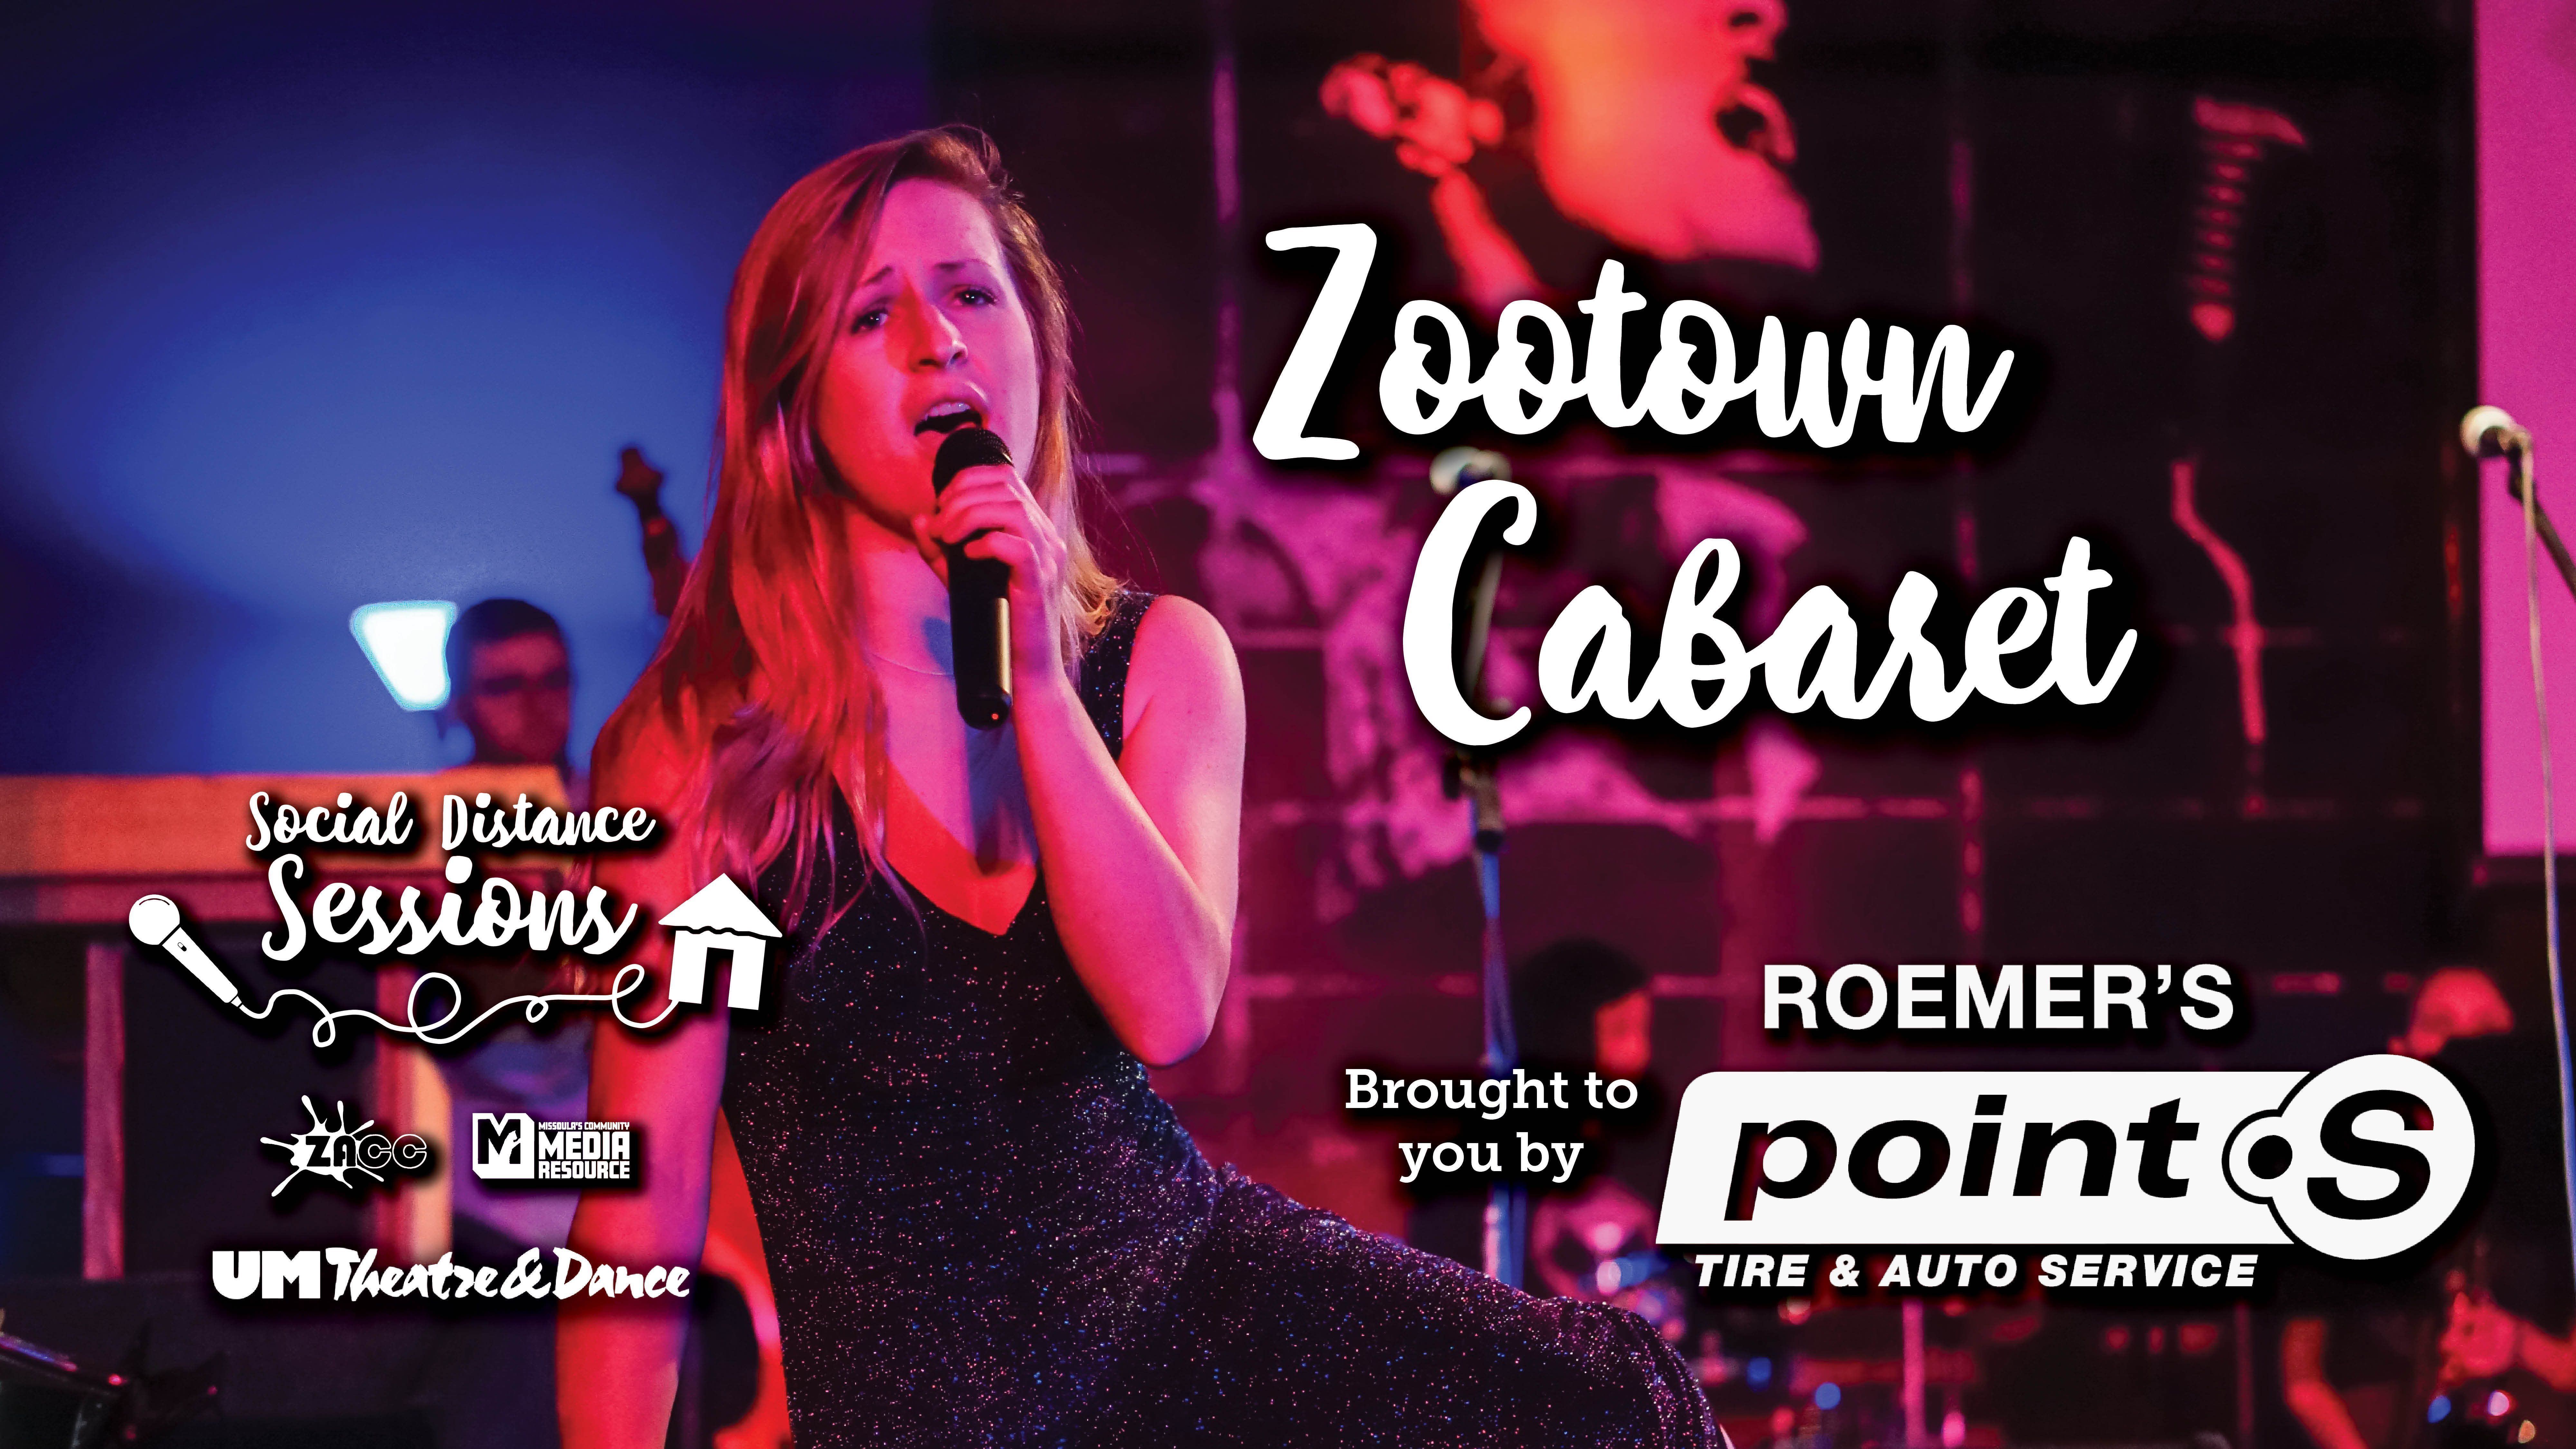 Social Distance Sessions: Zootown Cabaret